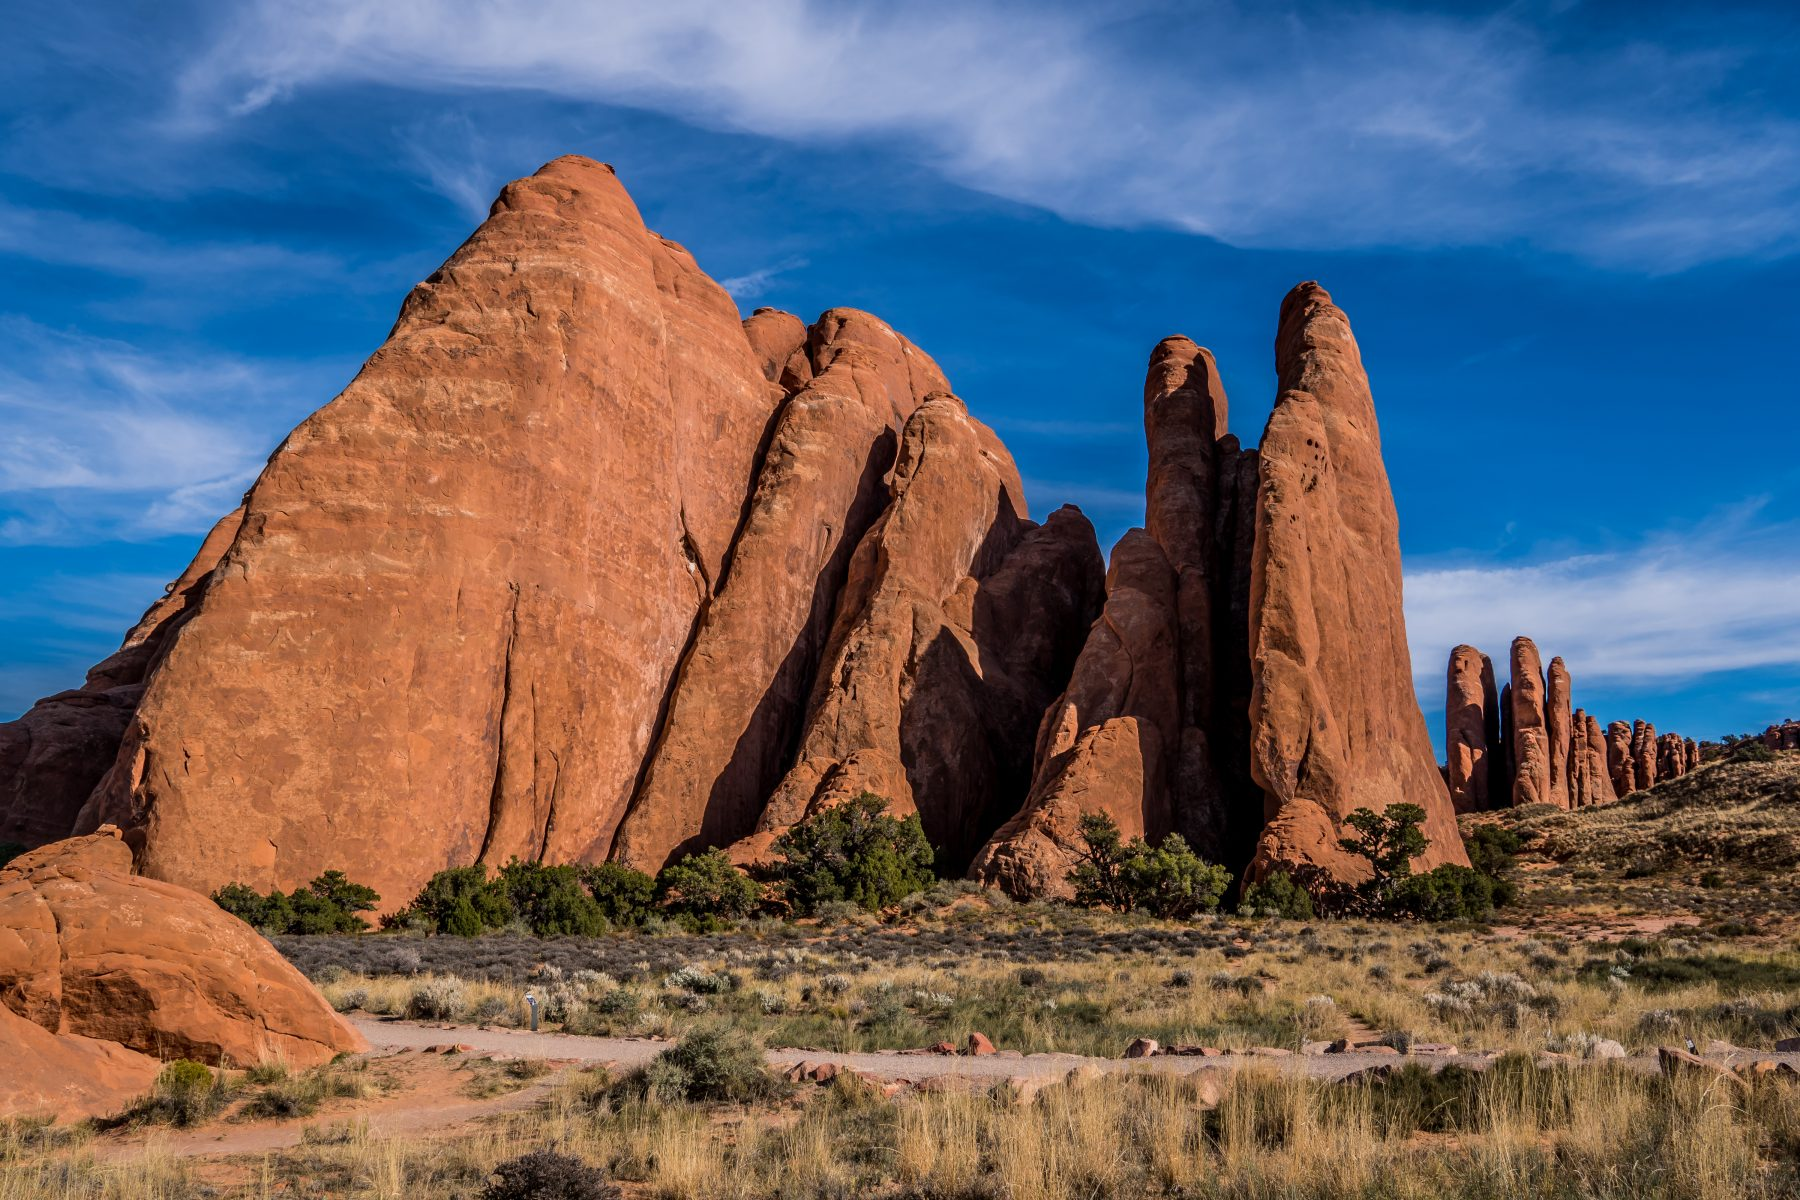 You hike between these massive sandstone fins to reach Sand Dune Arch. It's incredible!!